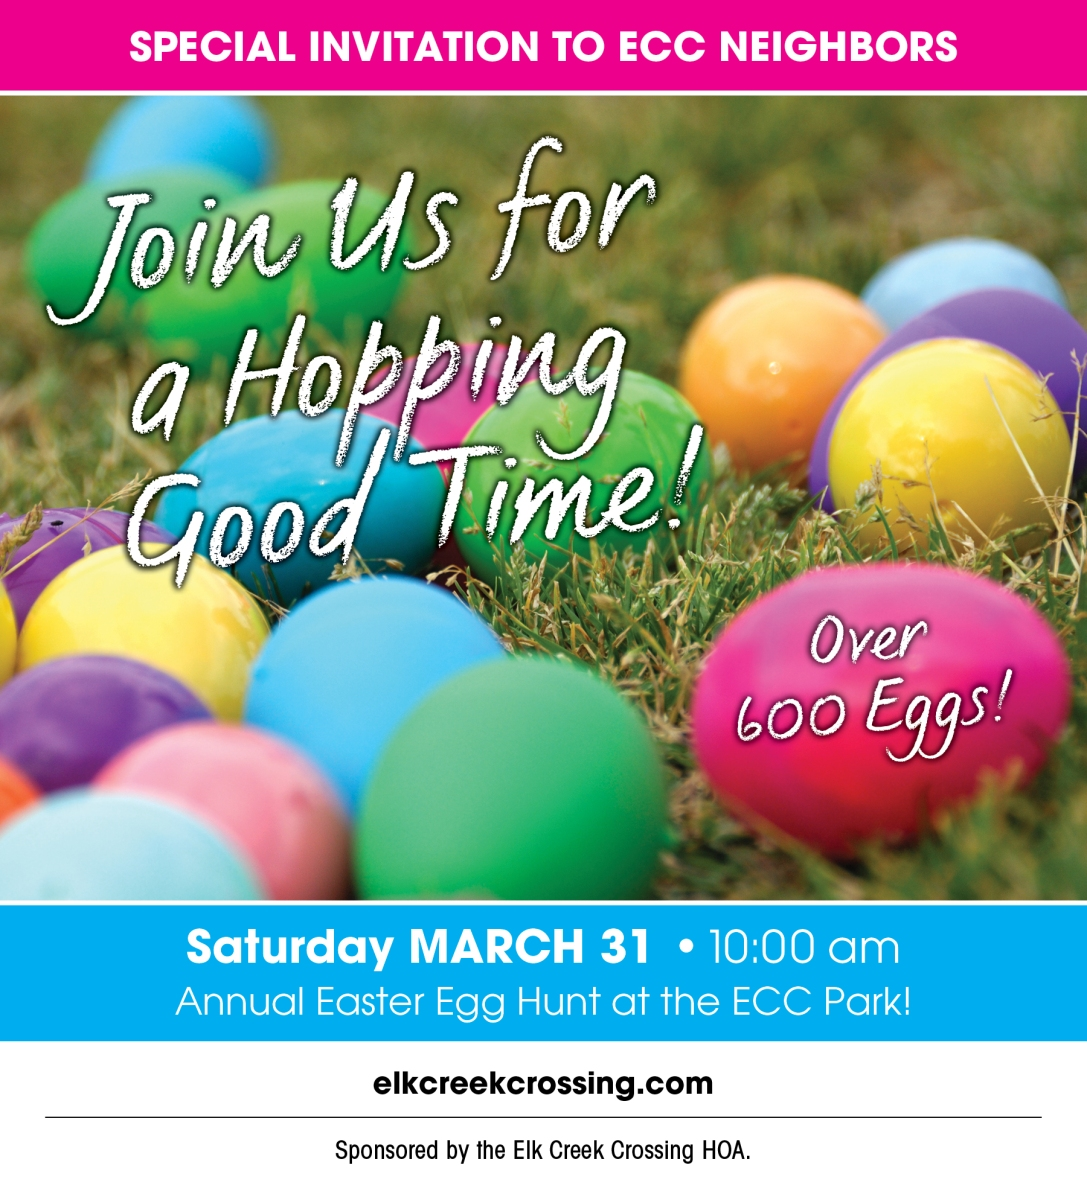 ECC Easter Egg Hunt 2019!